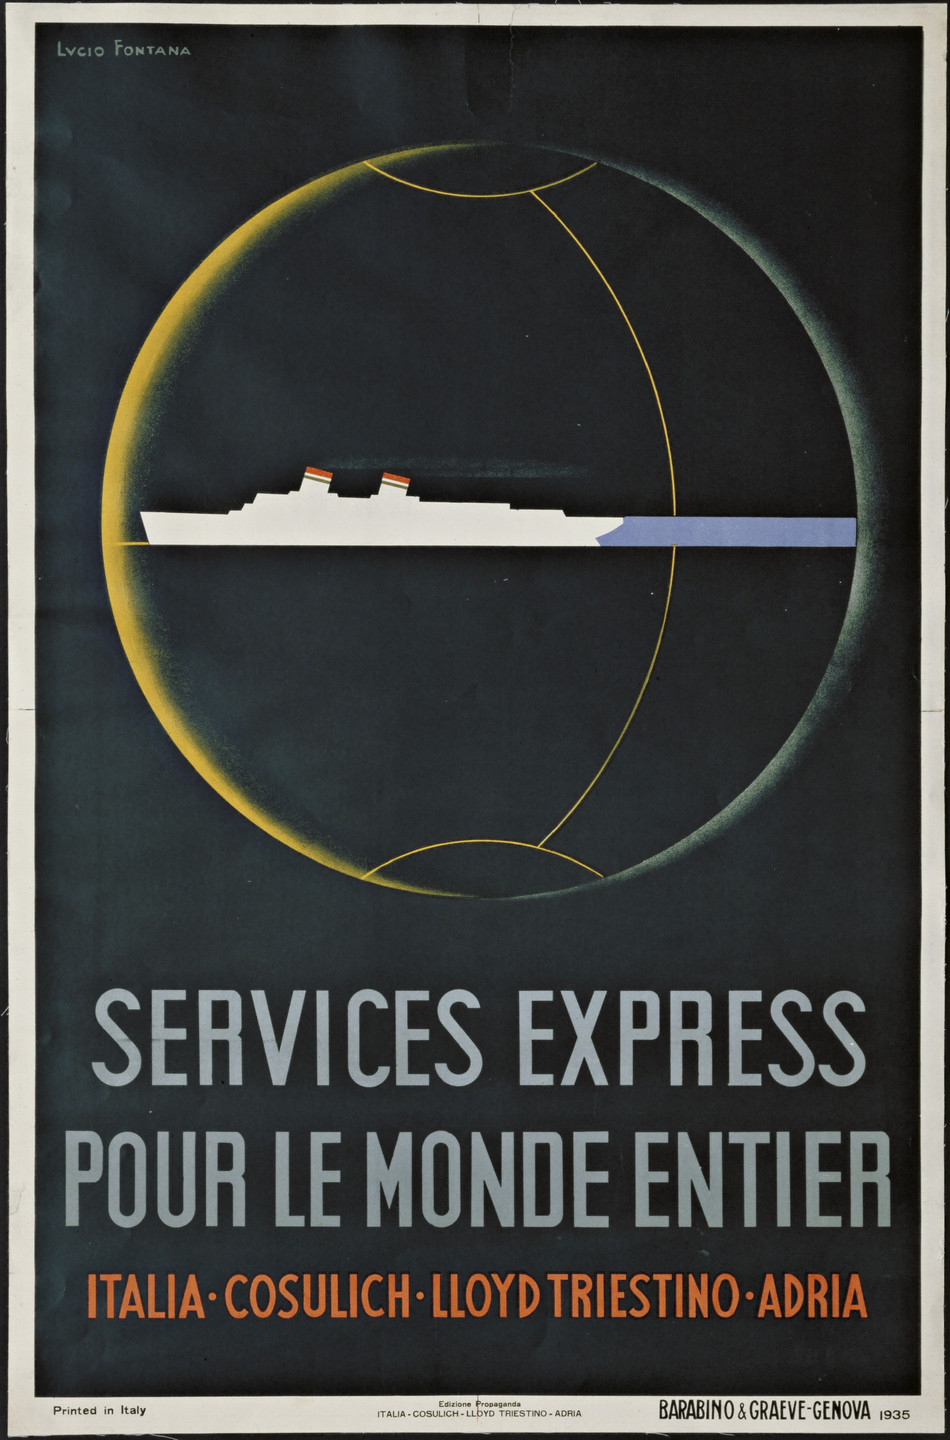 Lucio Fontana. Services Express Pour le Monde Entier (Poster advertising the four United Italian shipping lines [Italia Flotte Riunite, Consulich S.T.N., Lloyd Triestino and Adria]). 1935